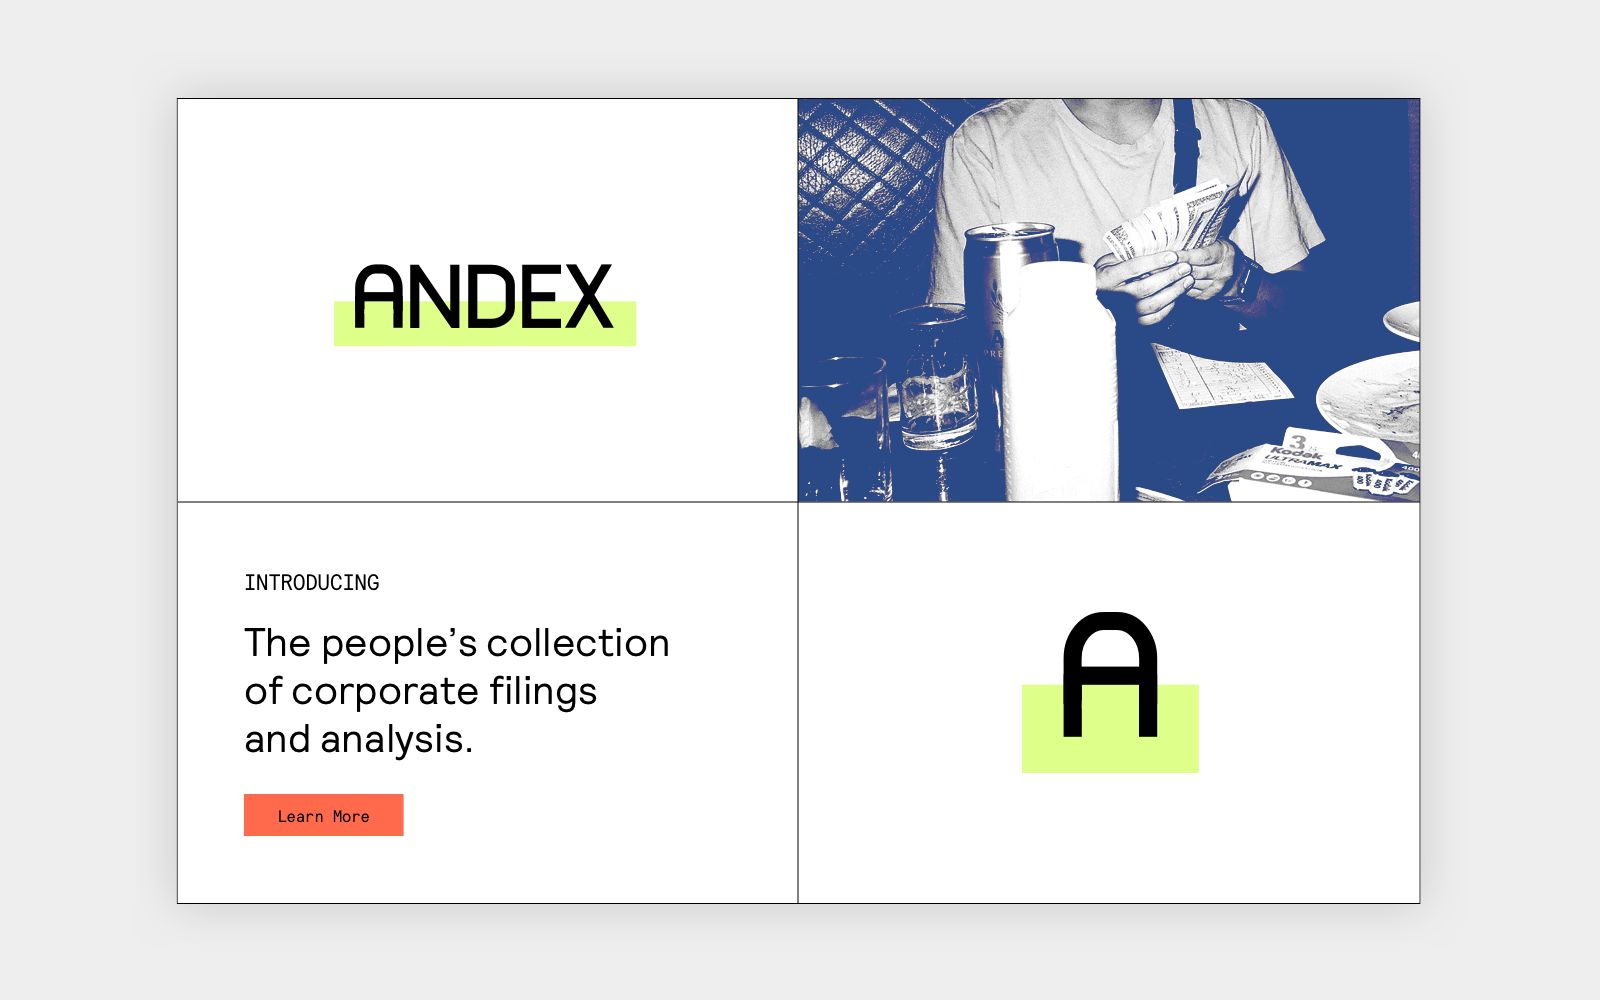 andex_1